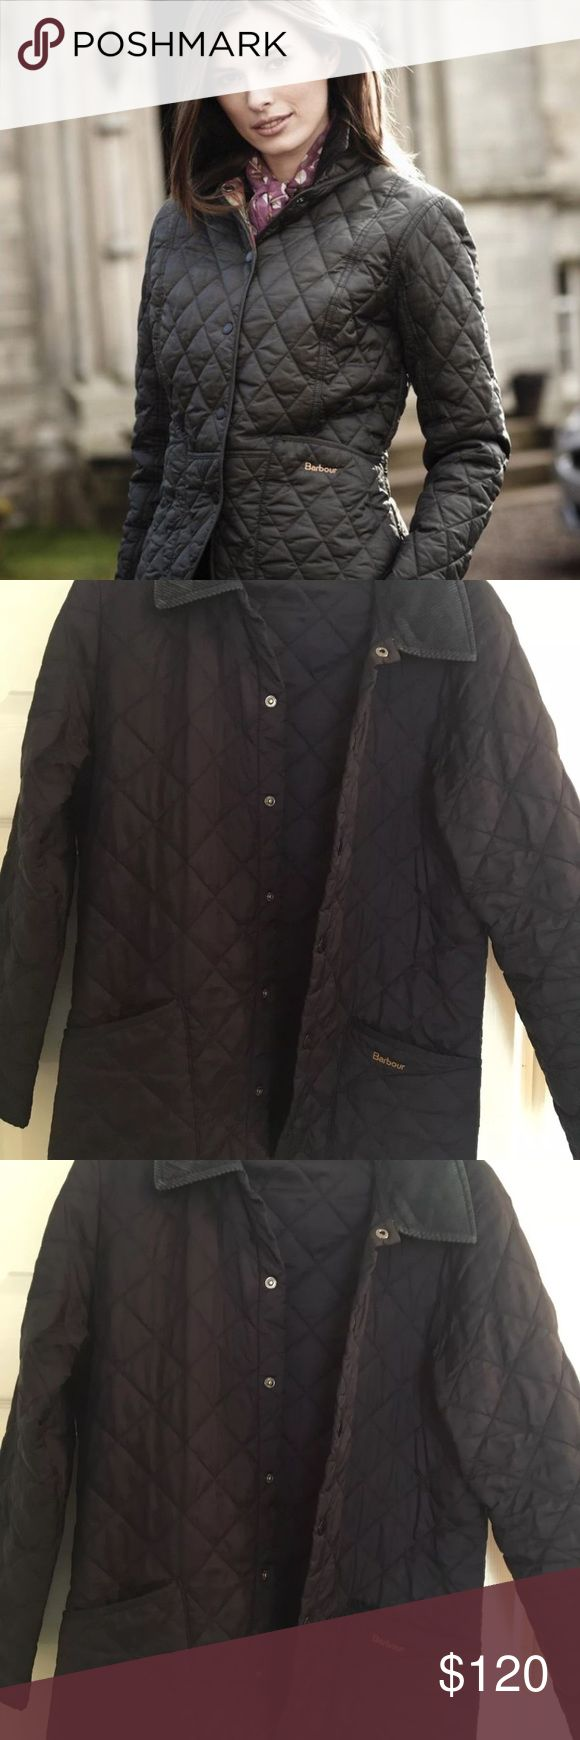 MOVING SALE! Barbour Quilted Jacket, size XS Barbour quilted Jacket, size XS. In great condition, only worn a couple times. Perfect for fall! More like a size small. Barbour Jackets & Coats